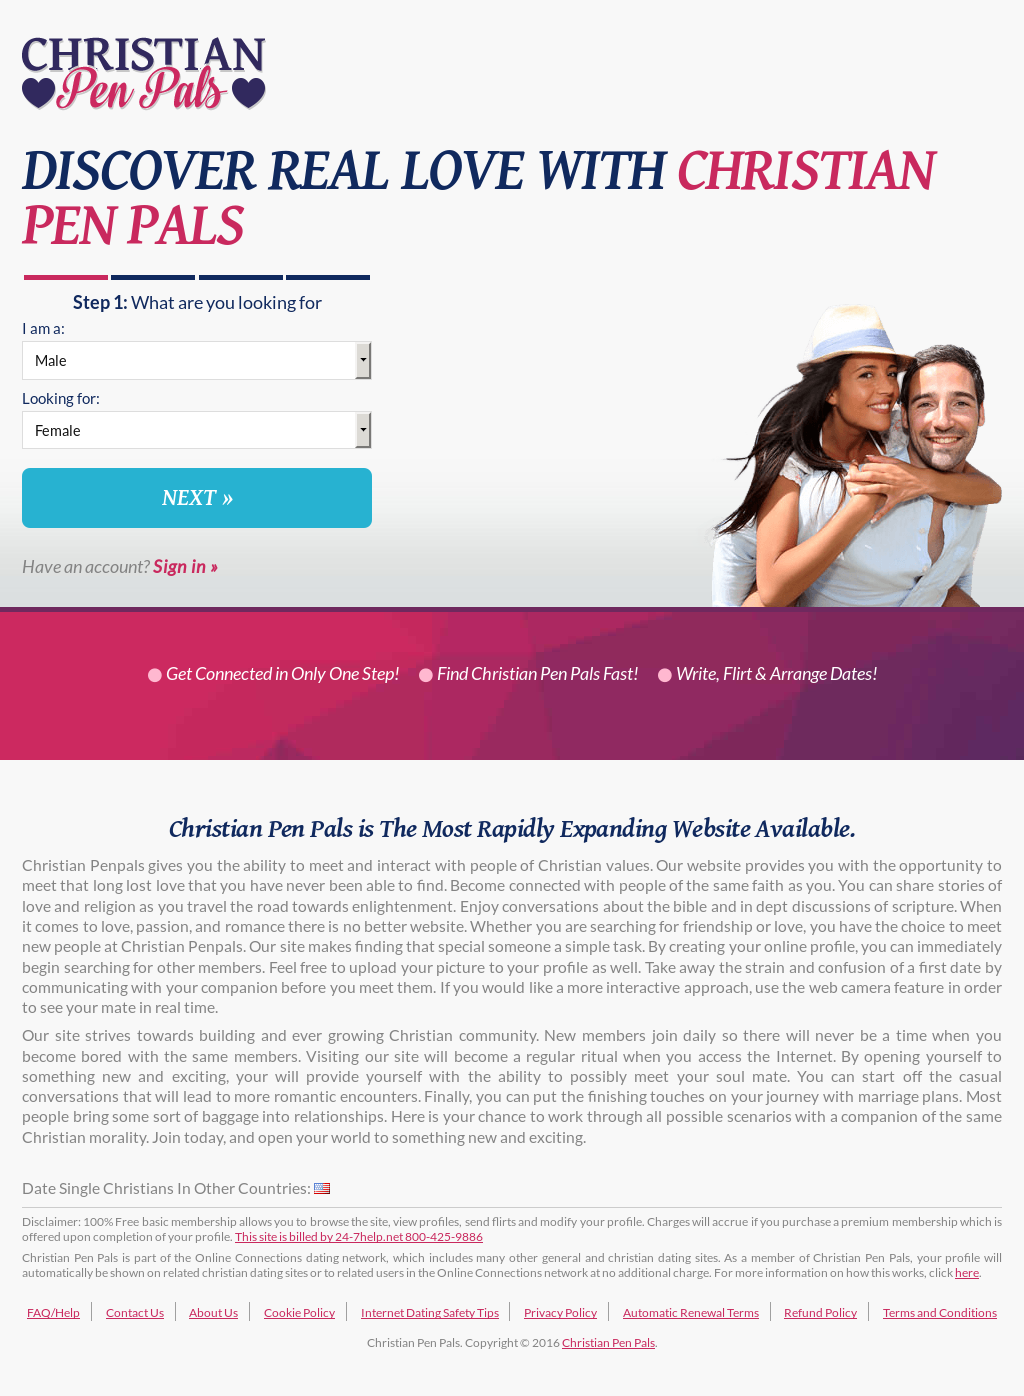 Christian Pen Pals Competitors, Revenue and Employees